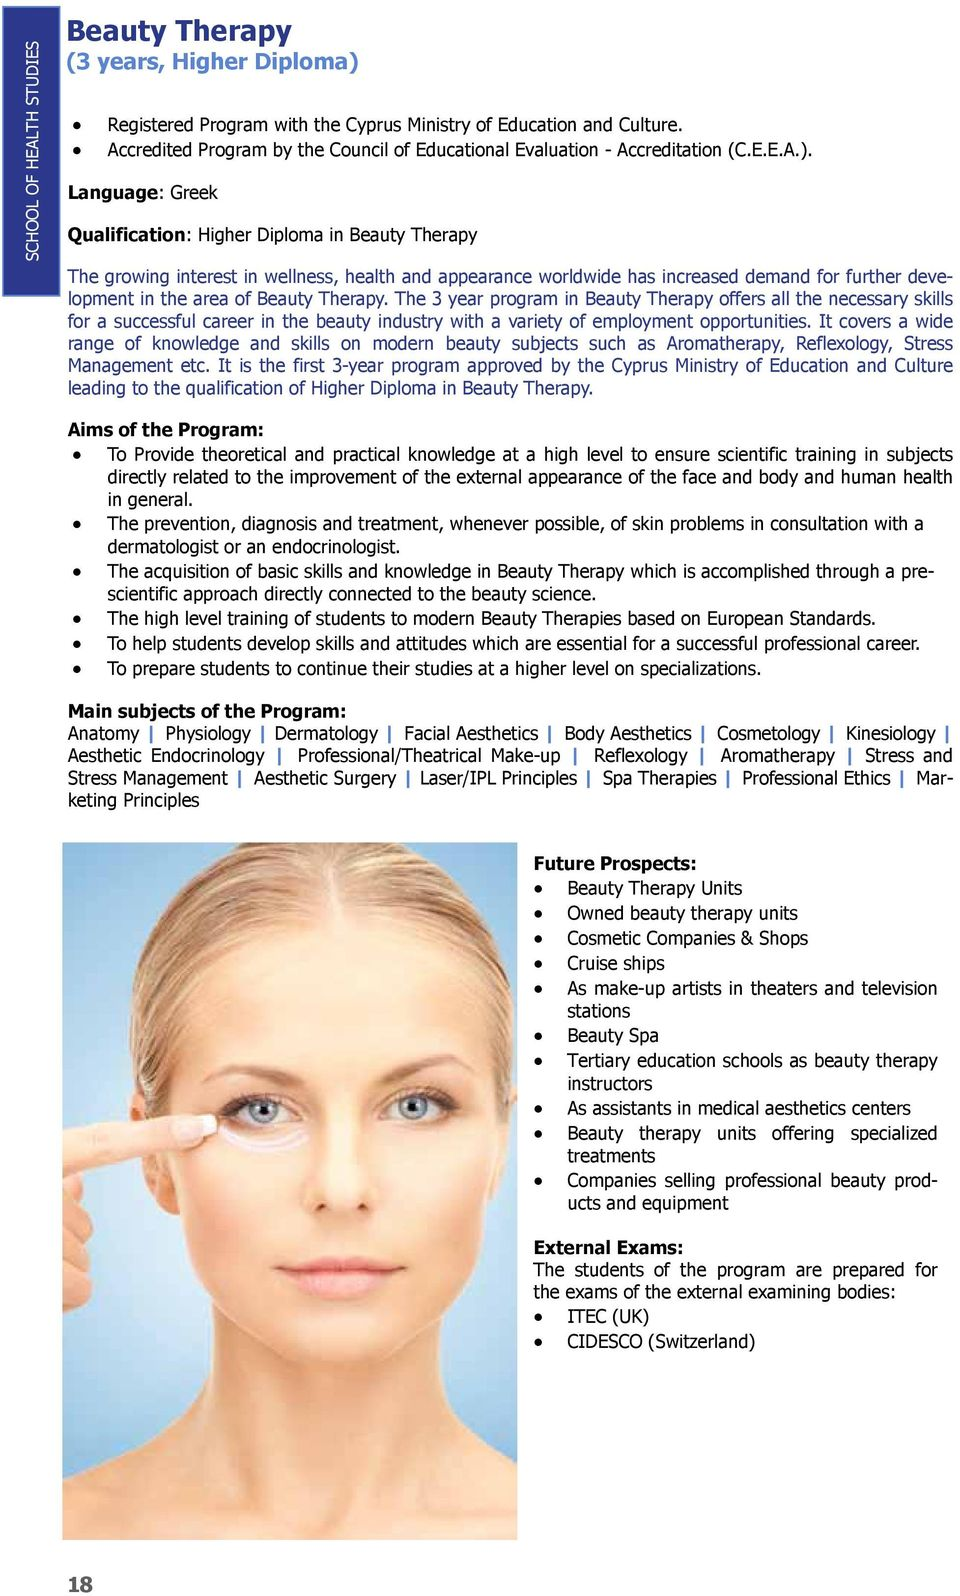 Language: Greek Qualification: Higher Diploma in Beauty Therapy The growing interest in wellness, health and appearance worldwide has increased demand for further development in the area of Beauty